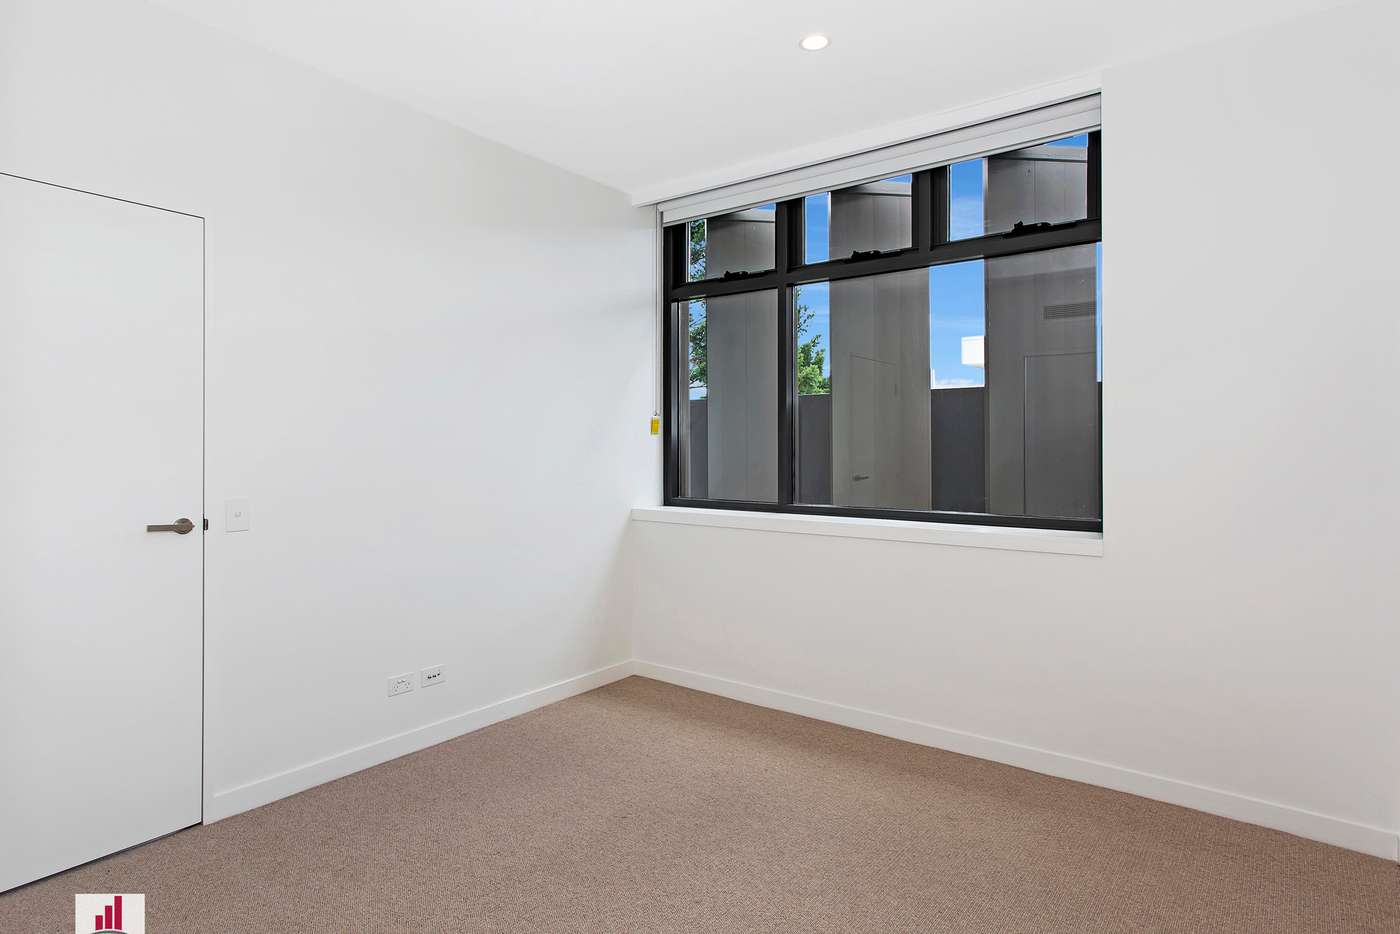 Sixth view of Homely apartment listing, 5106/331 MacArthur Avenue, Hamilton QLD 4007